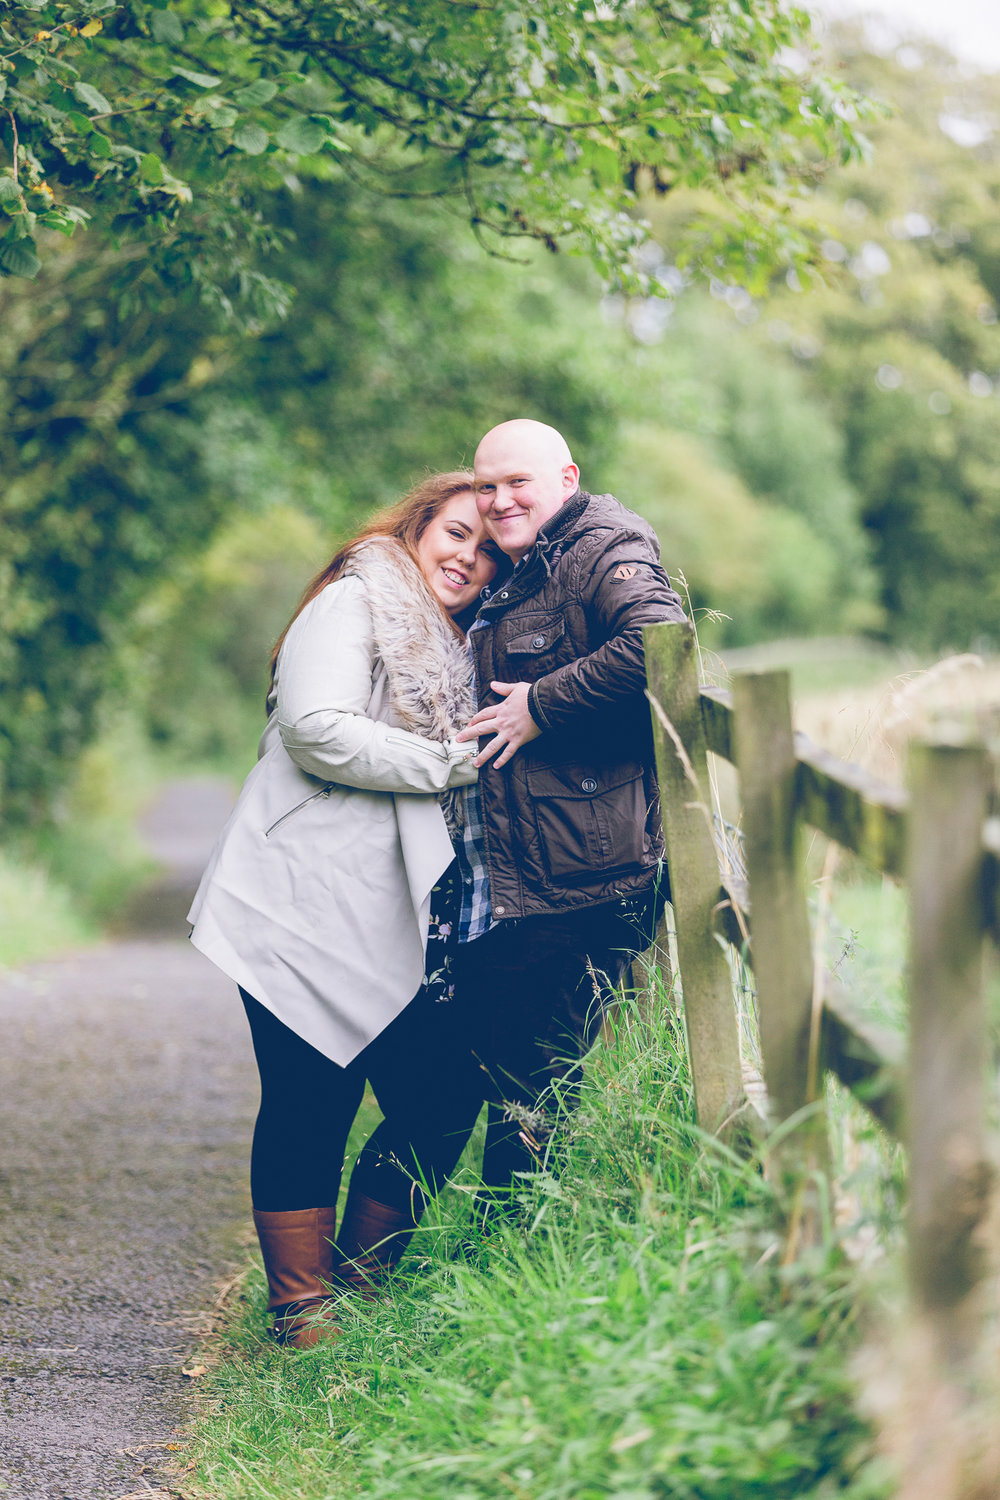 0023-Melissa & Adam-Engagement-Wycoller Country Park-Lancashire-photo.jpg